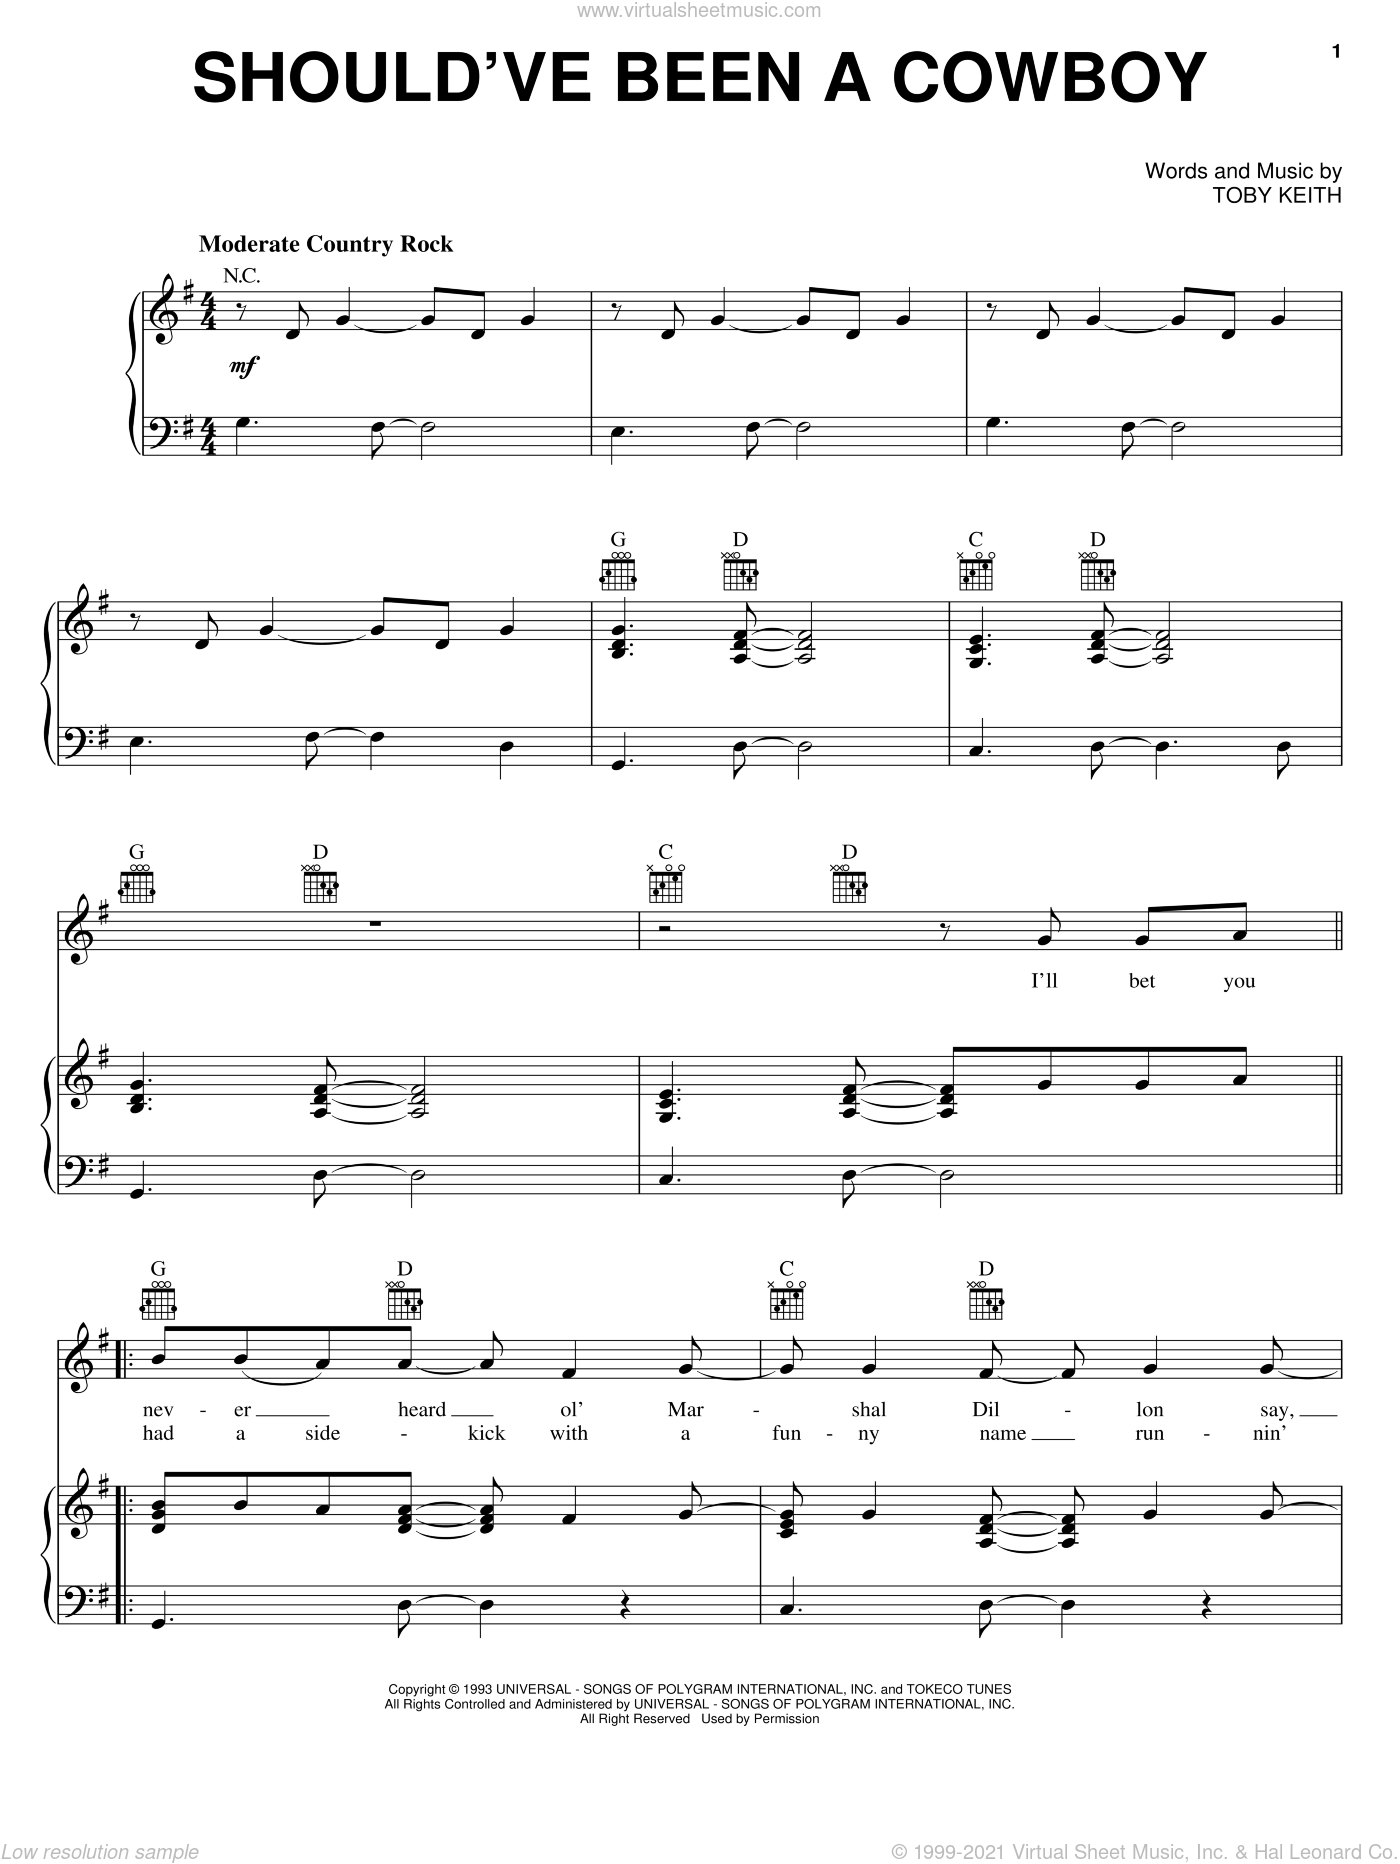 Should've Been A Cowboy sheet music for voice, piano or guitar by Toby Keith. Score Image Preview.